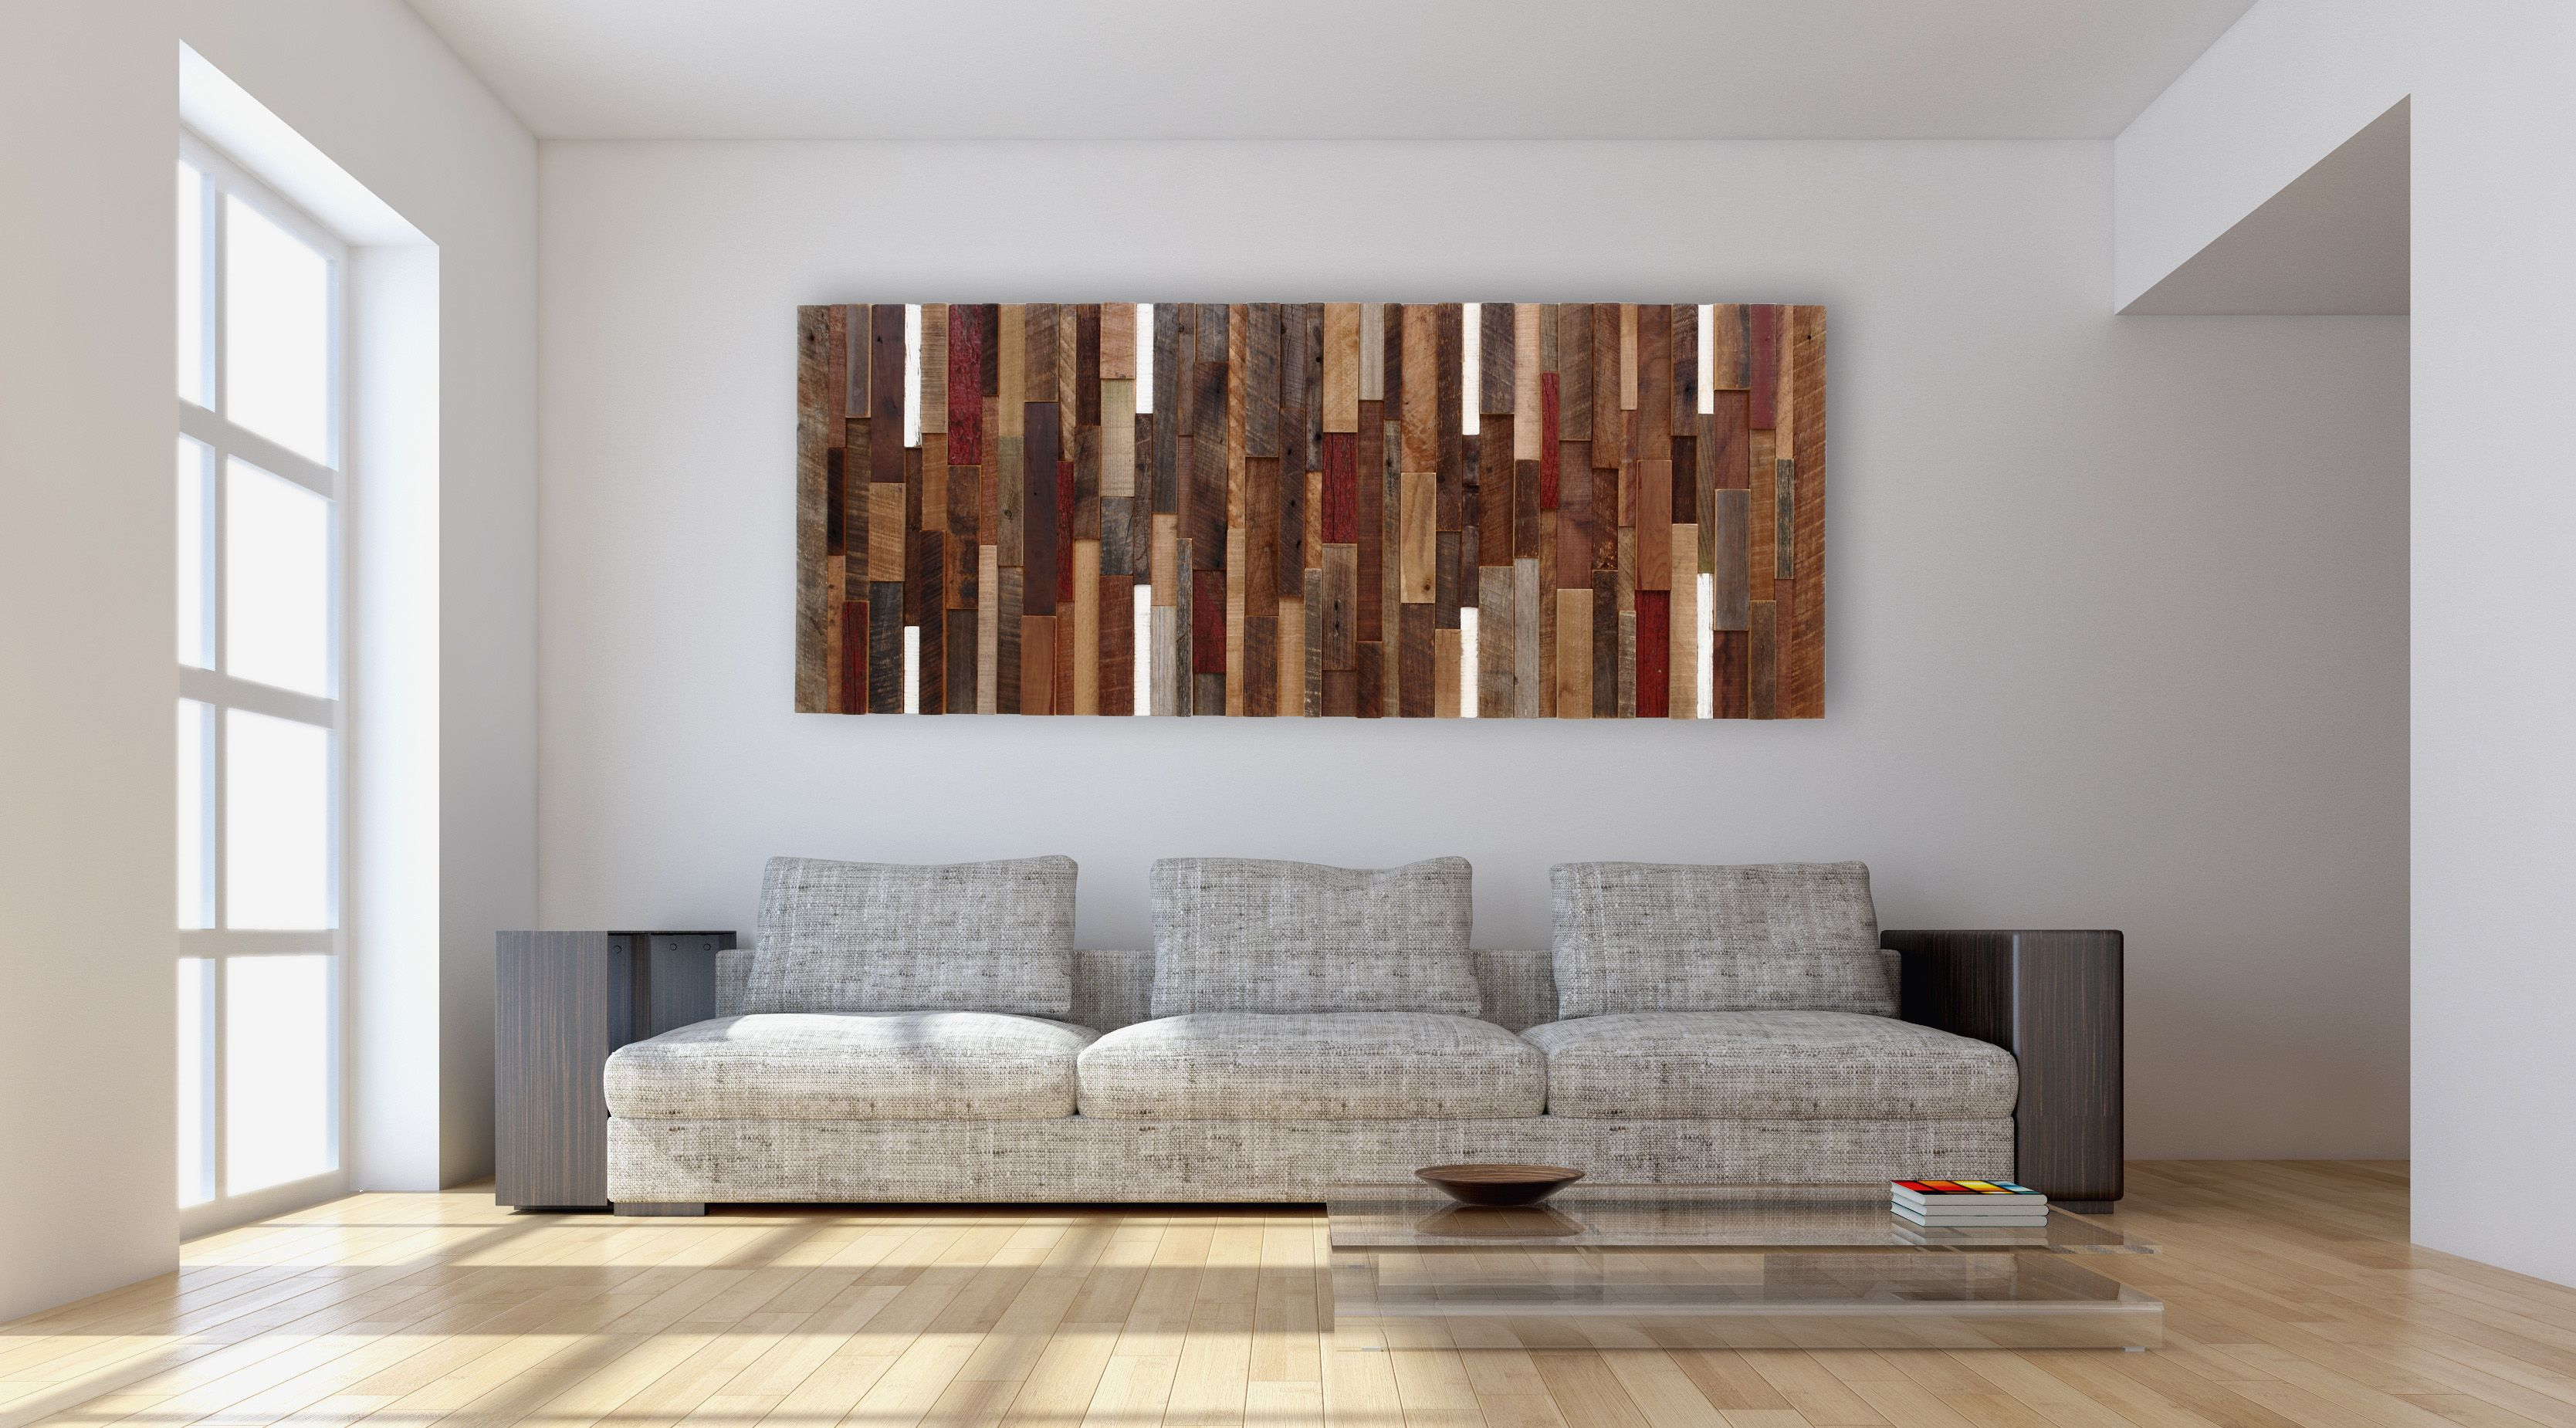 Wall Wood Art hand made reclaimed wood wall art, made intirely of reclaimed barn